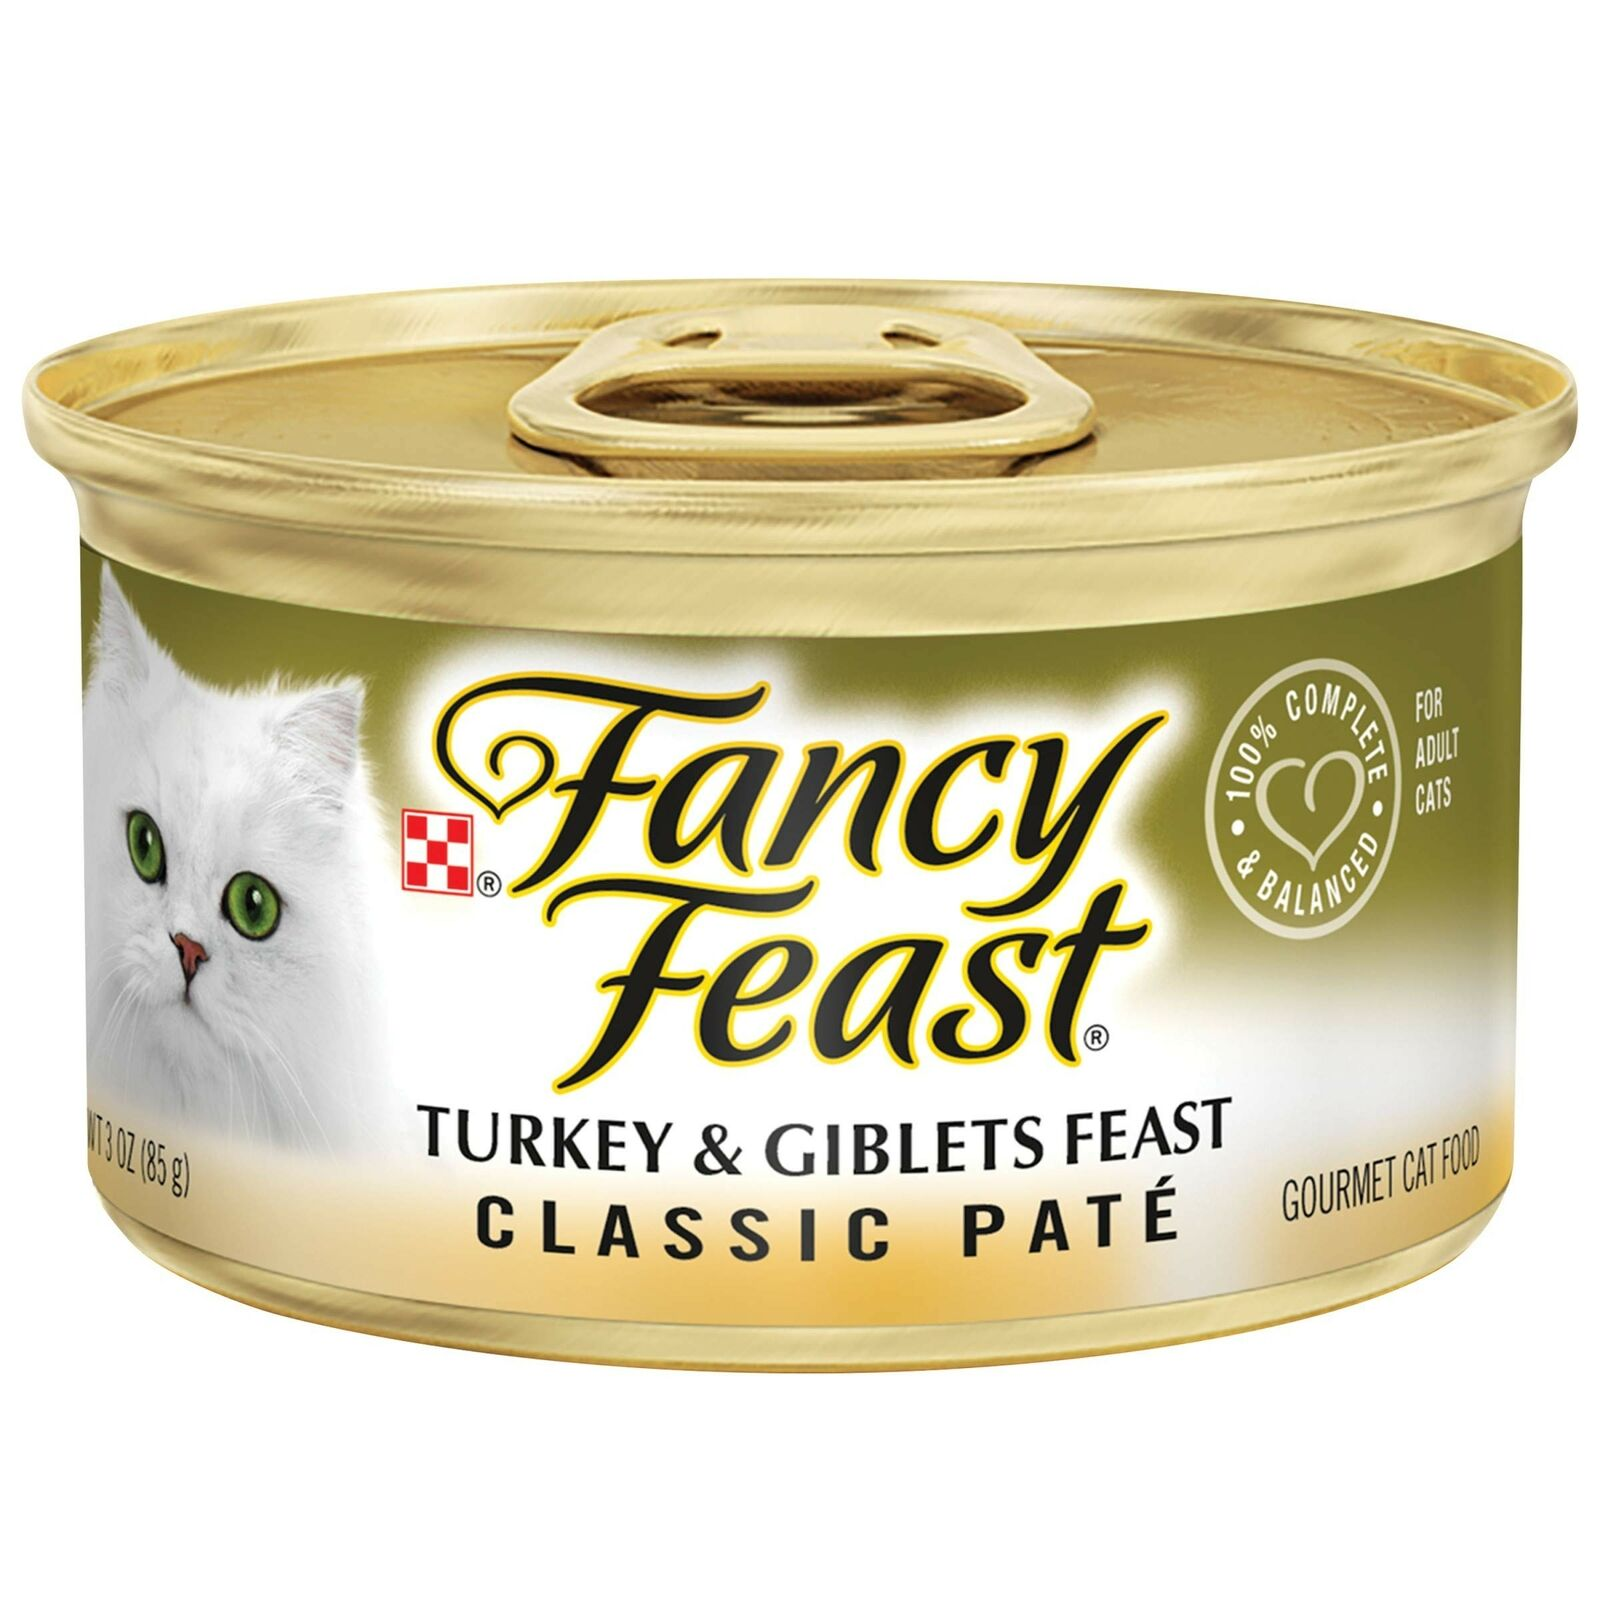 Purina Fancy Feast Pate Adult Canned Wet Cat Food Classic Pate Turkey & Giblets